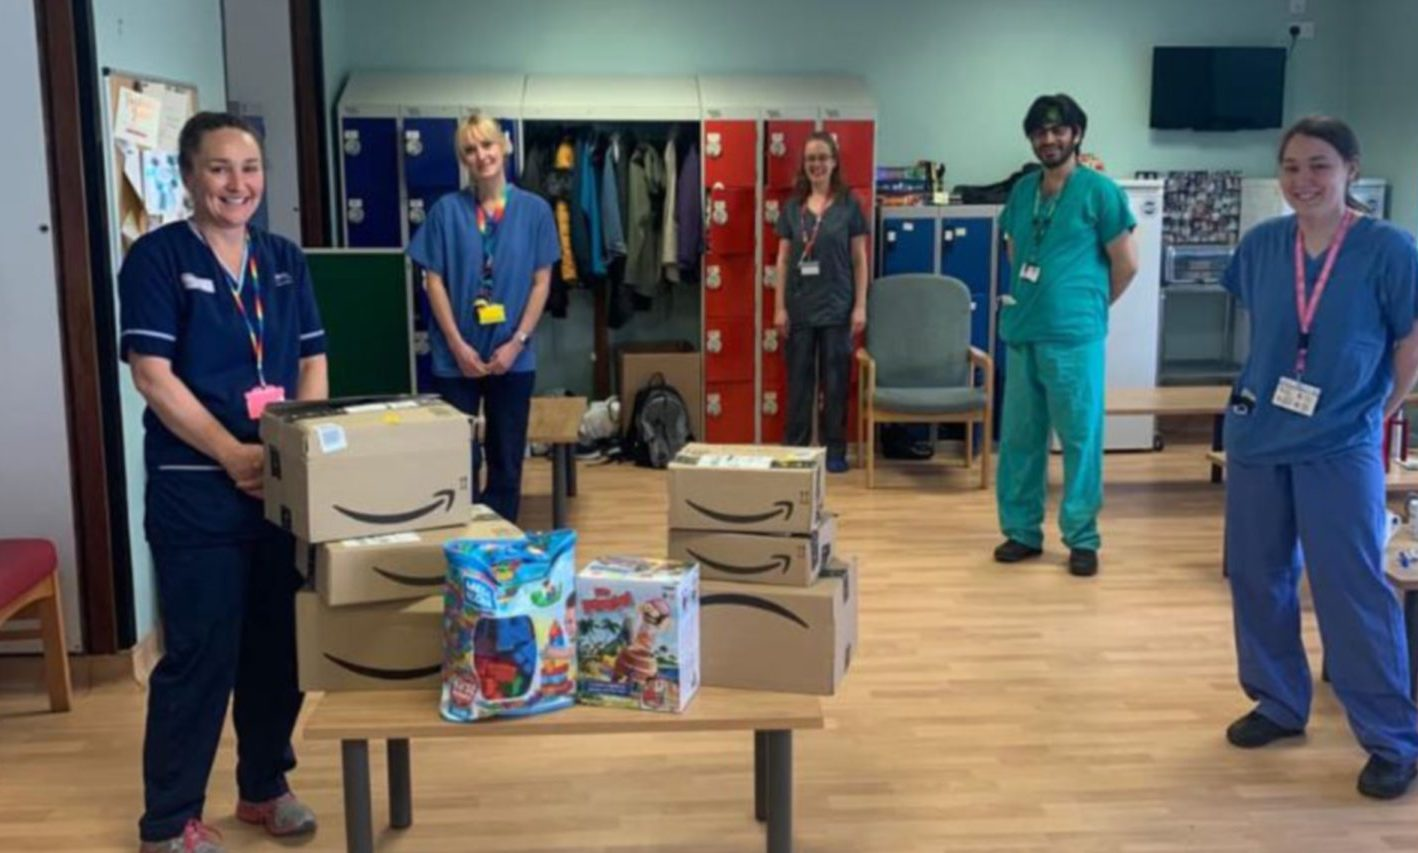 Staff at the Tayside Children's Hospital with just some of the donations they have received.